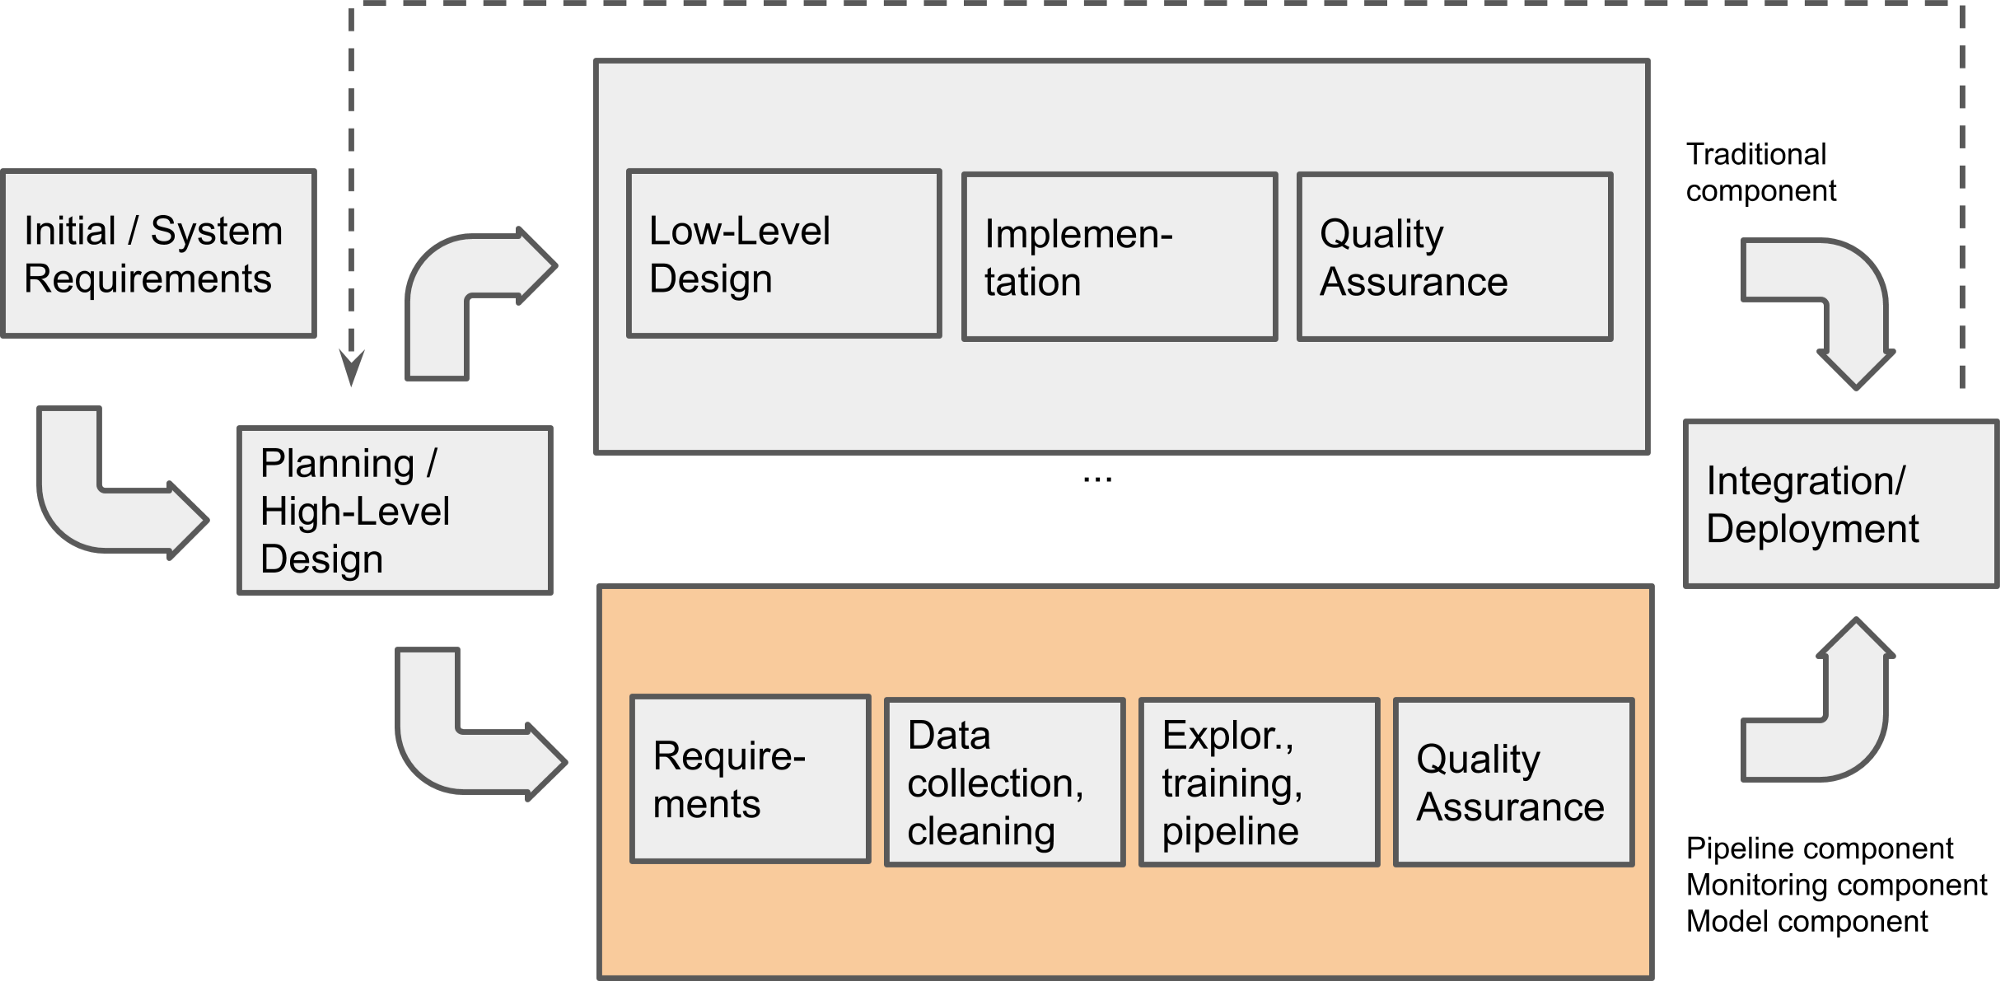 Unrolled process model showing an ML and a non-ML component in parallel